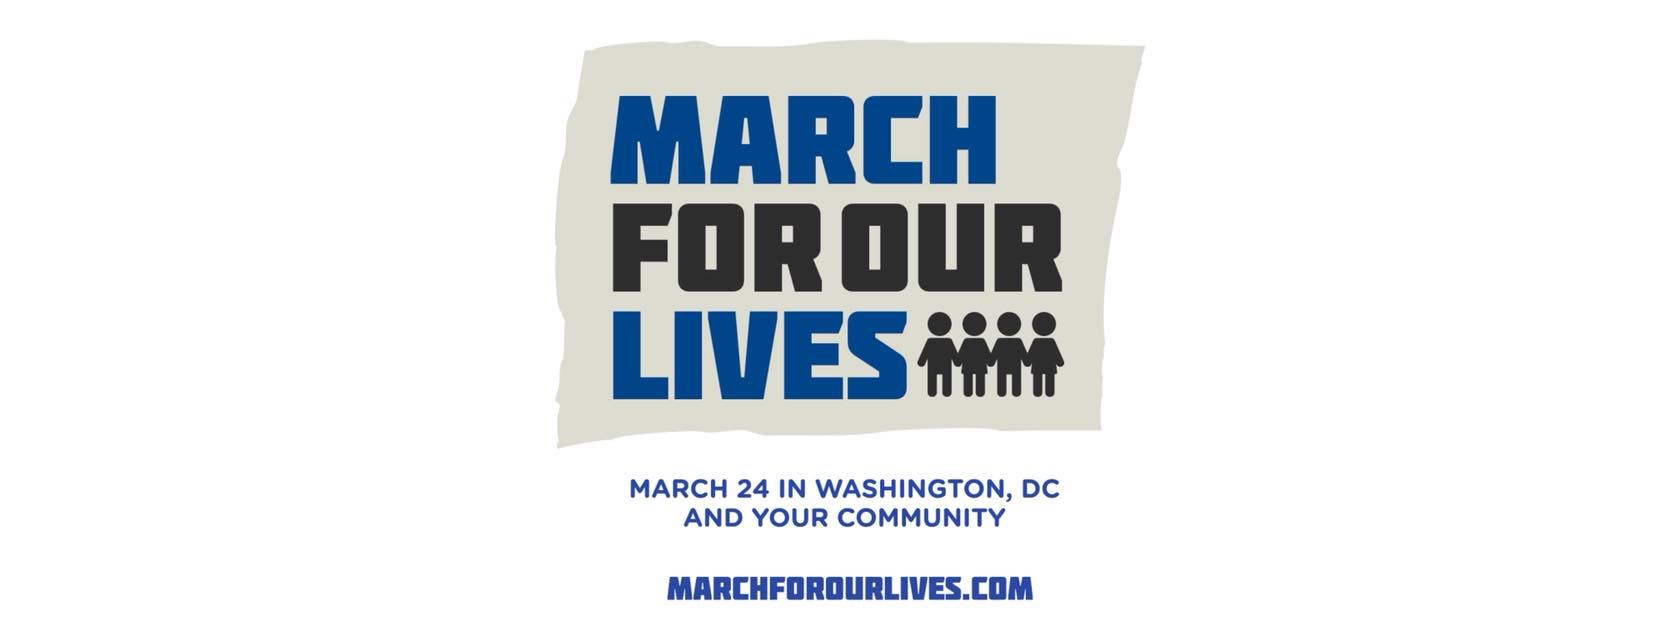 march for our lives dc information